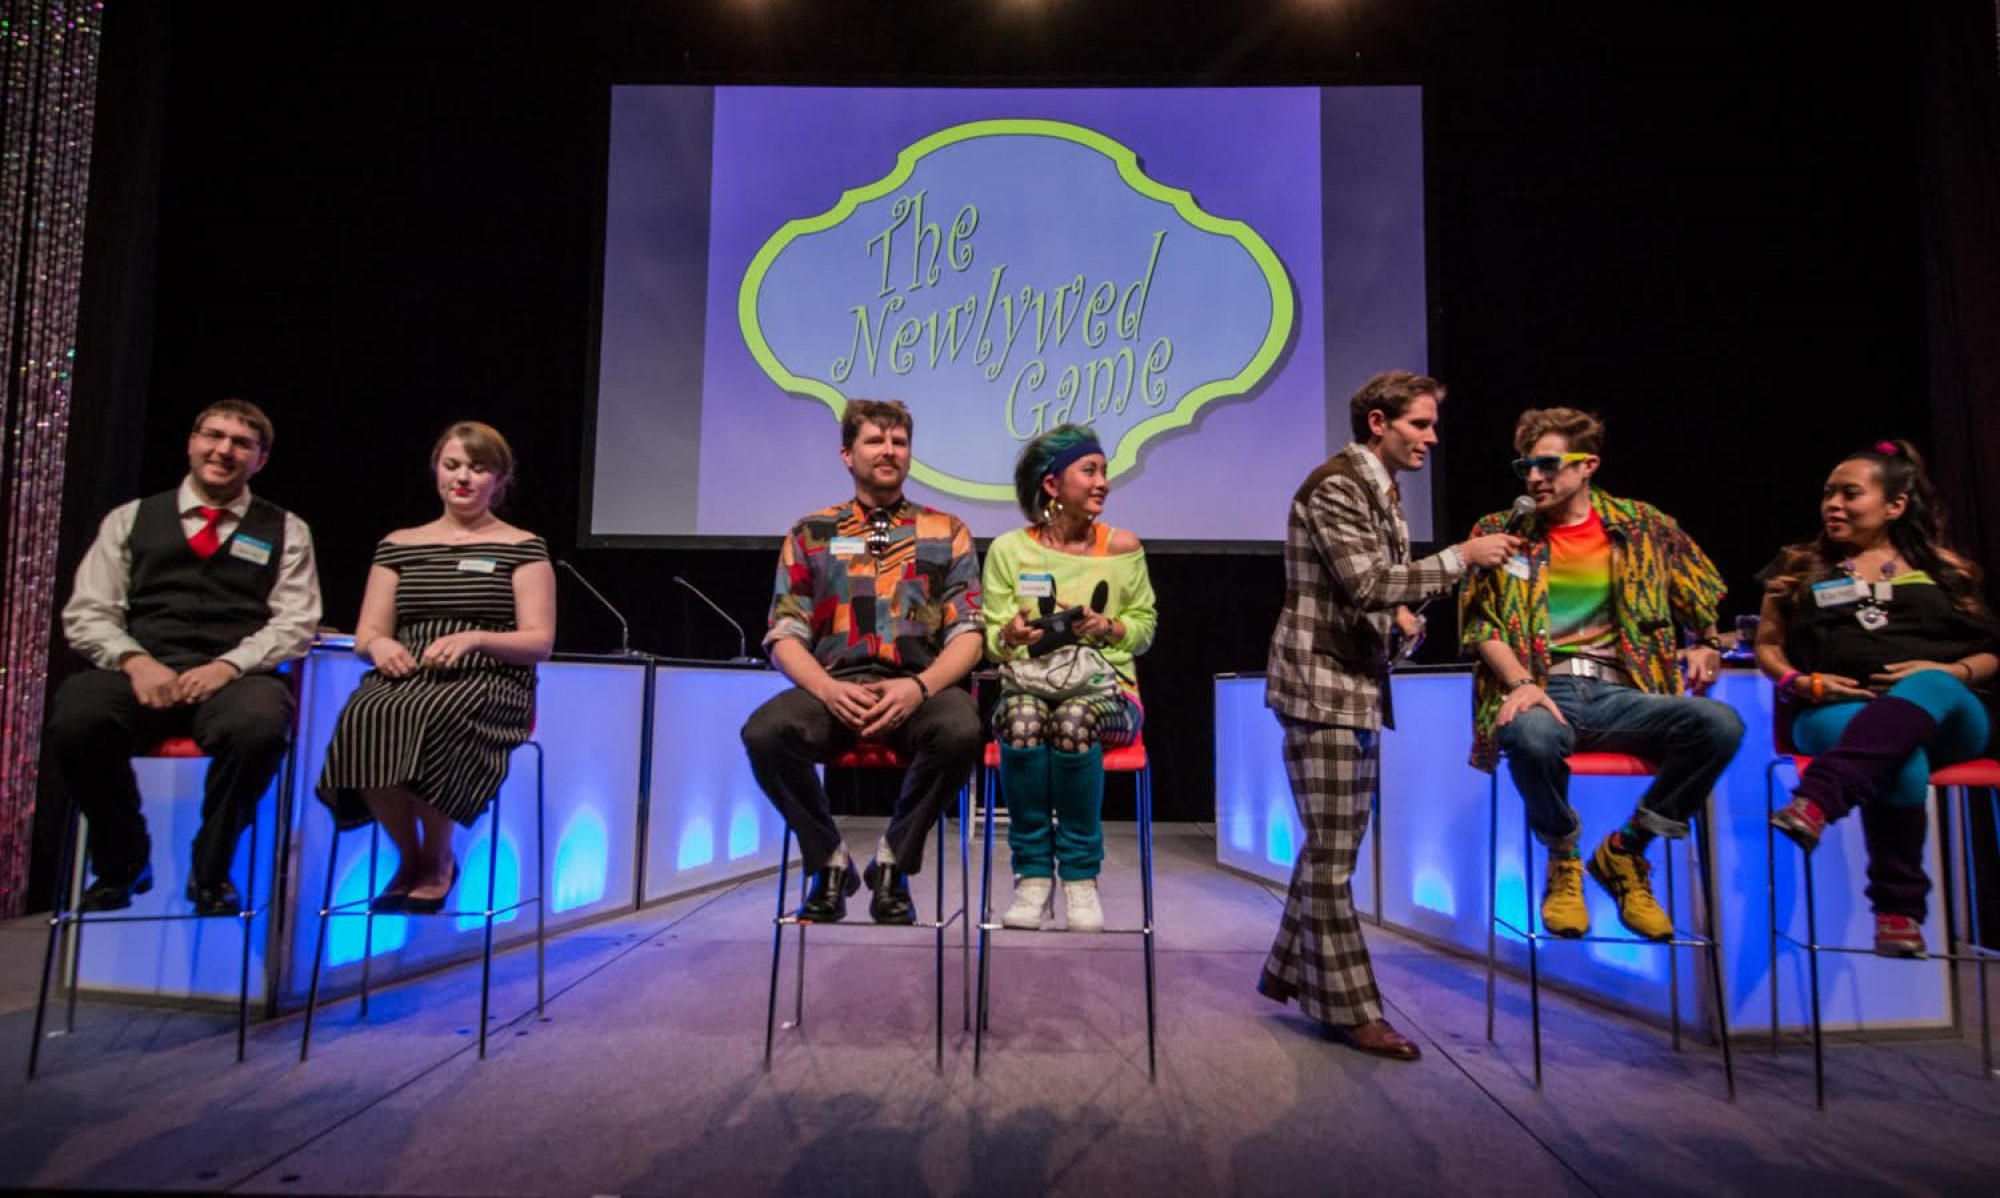 MACK GORDON'S GAME SHOW NIGHT to return to THE BILTMORE CABARET on MARCH 22, 2018